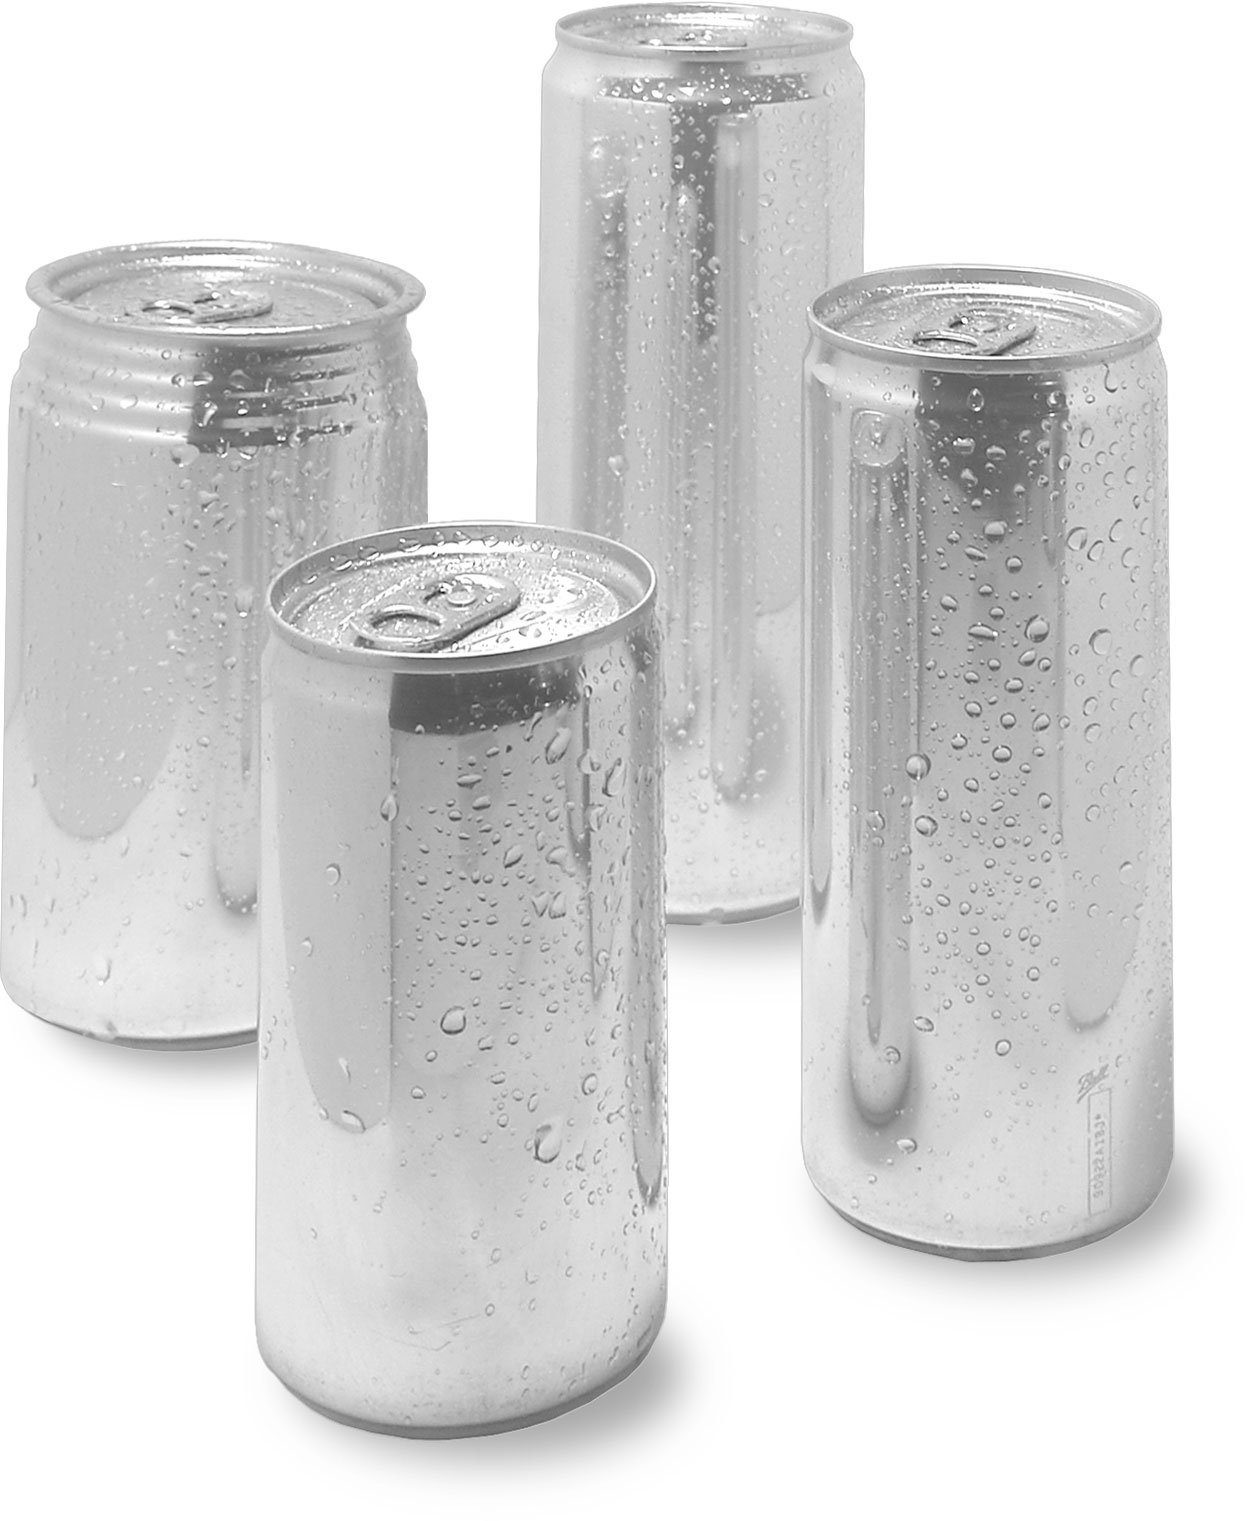 Specialty-size aluminum cans from Cascadia Can Company - Trusted Beverage Industry Supplier